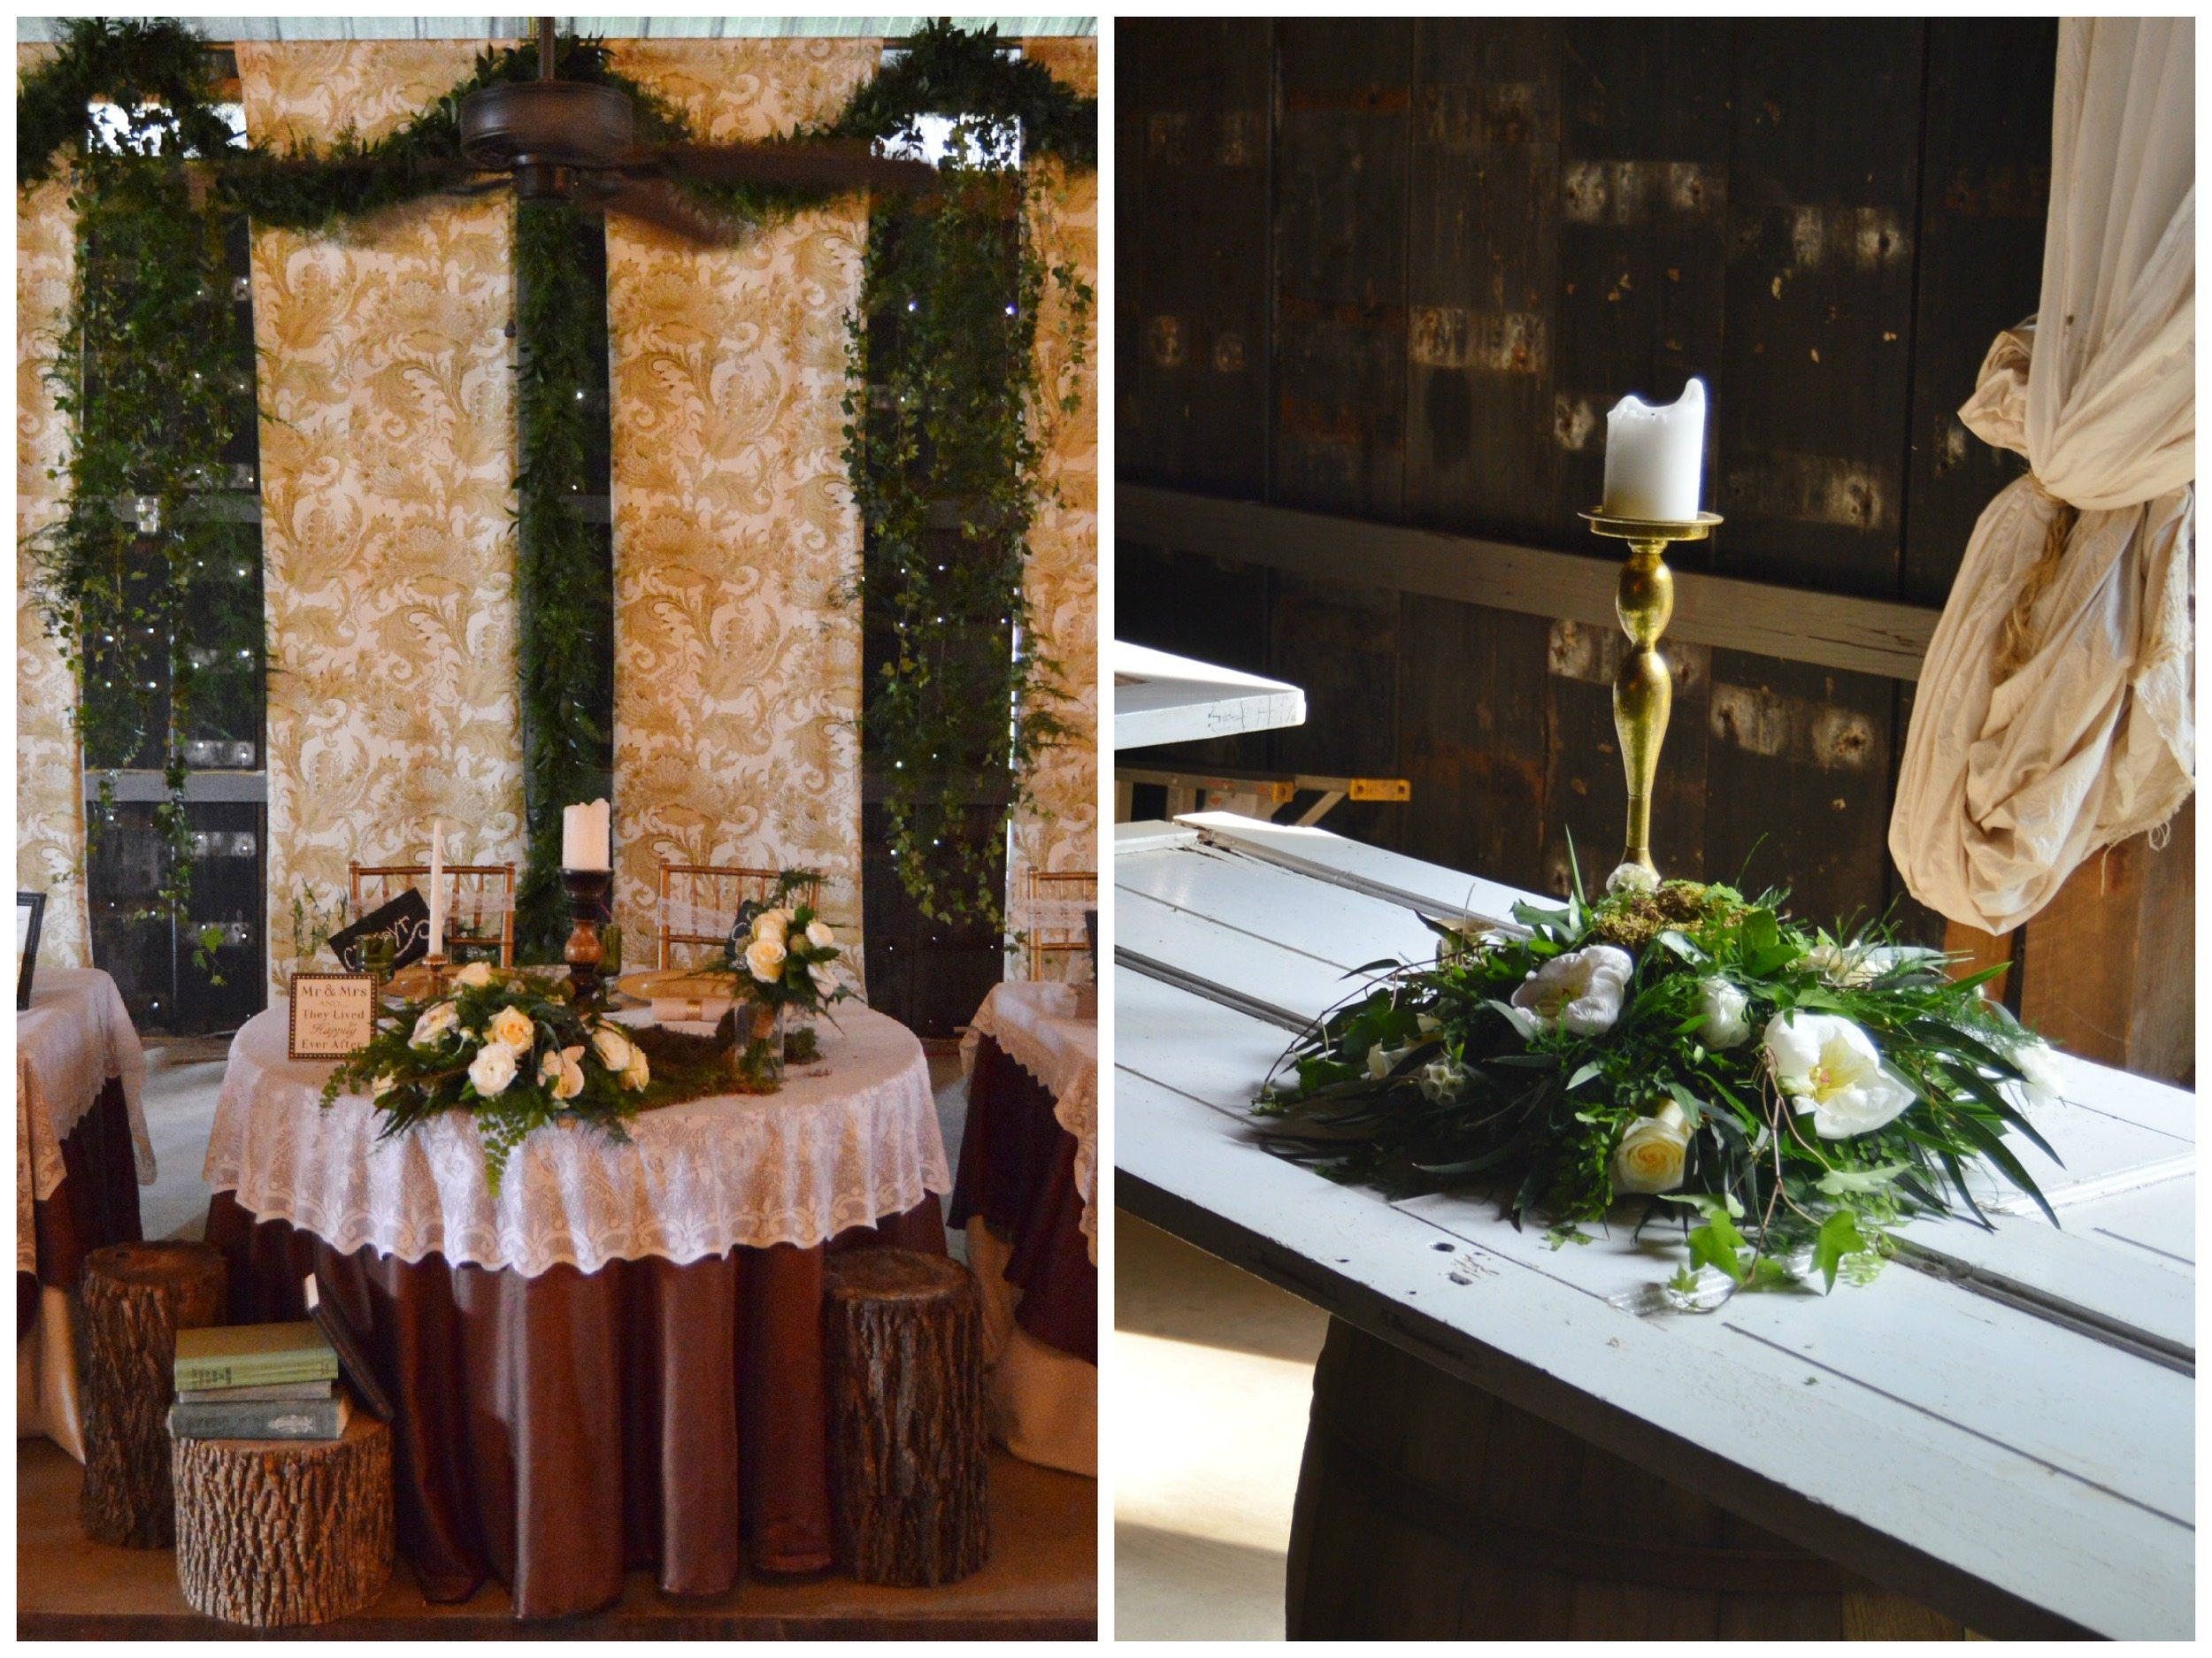 The table on the right was a memory table for Kelsey's father. It was beautiful!